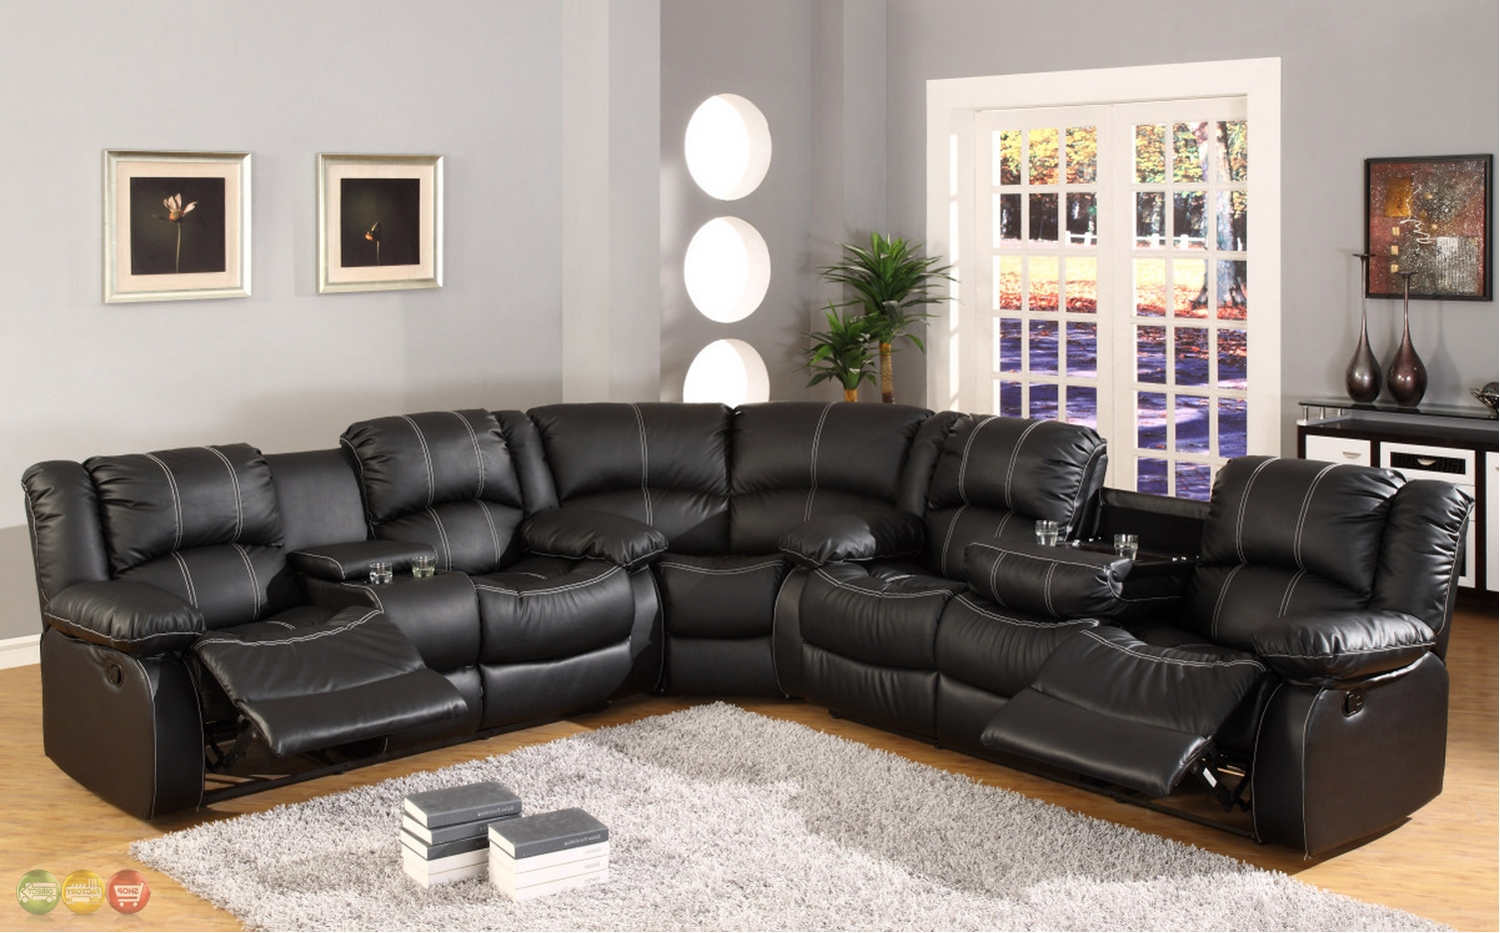 Leather Sofas With Storage Pertaining To Well Known Black Faux Leather Reclining Motion Sectional Sofa W/ Storage (View 5 of 15)